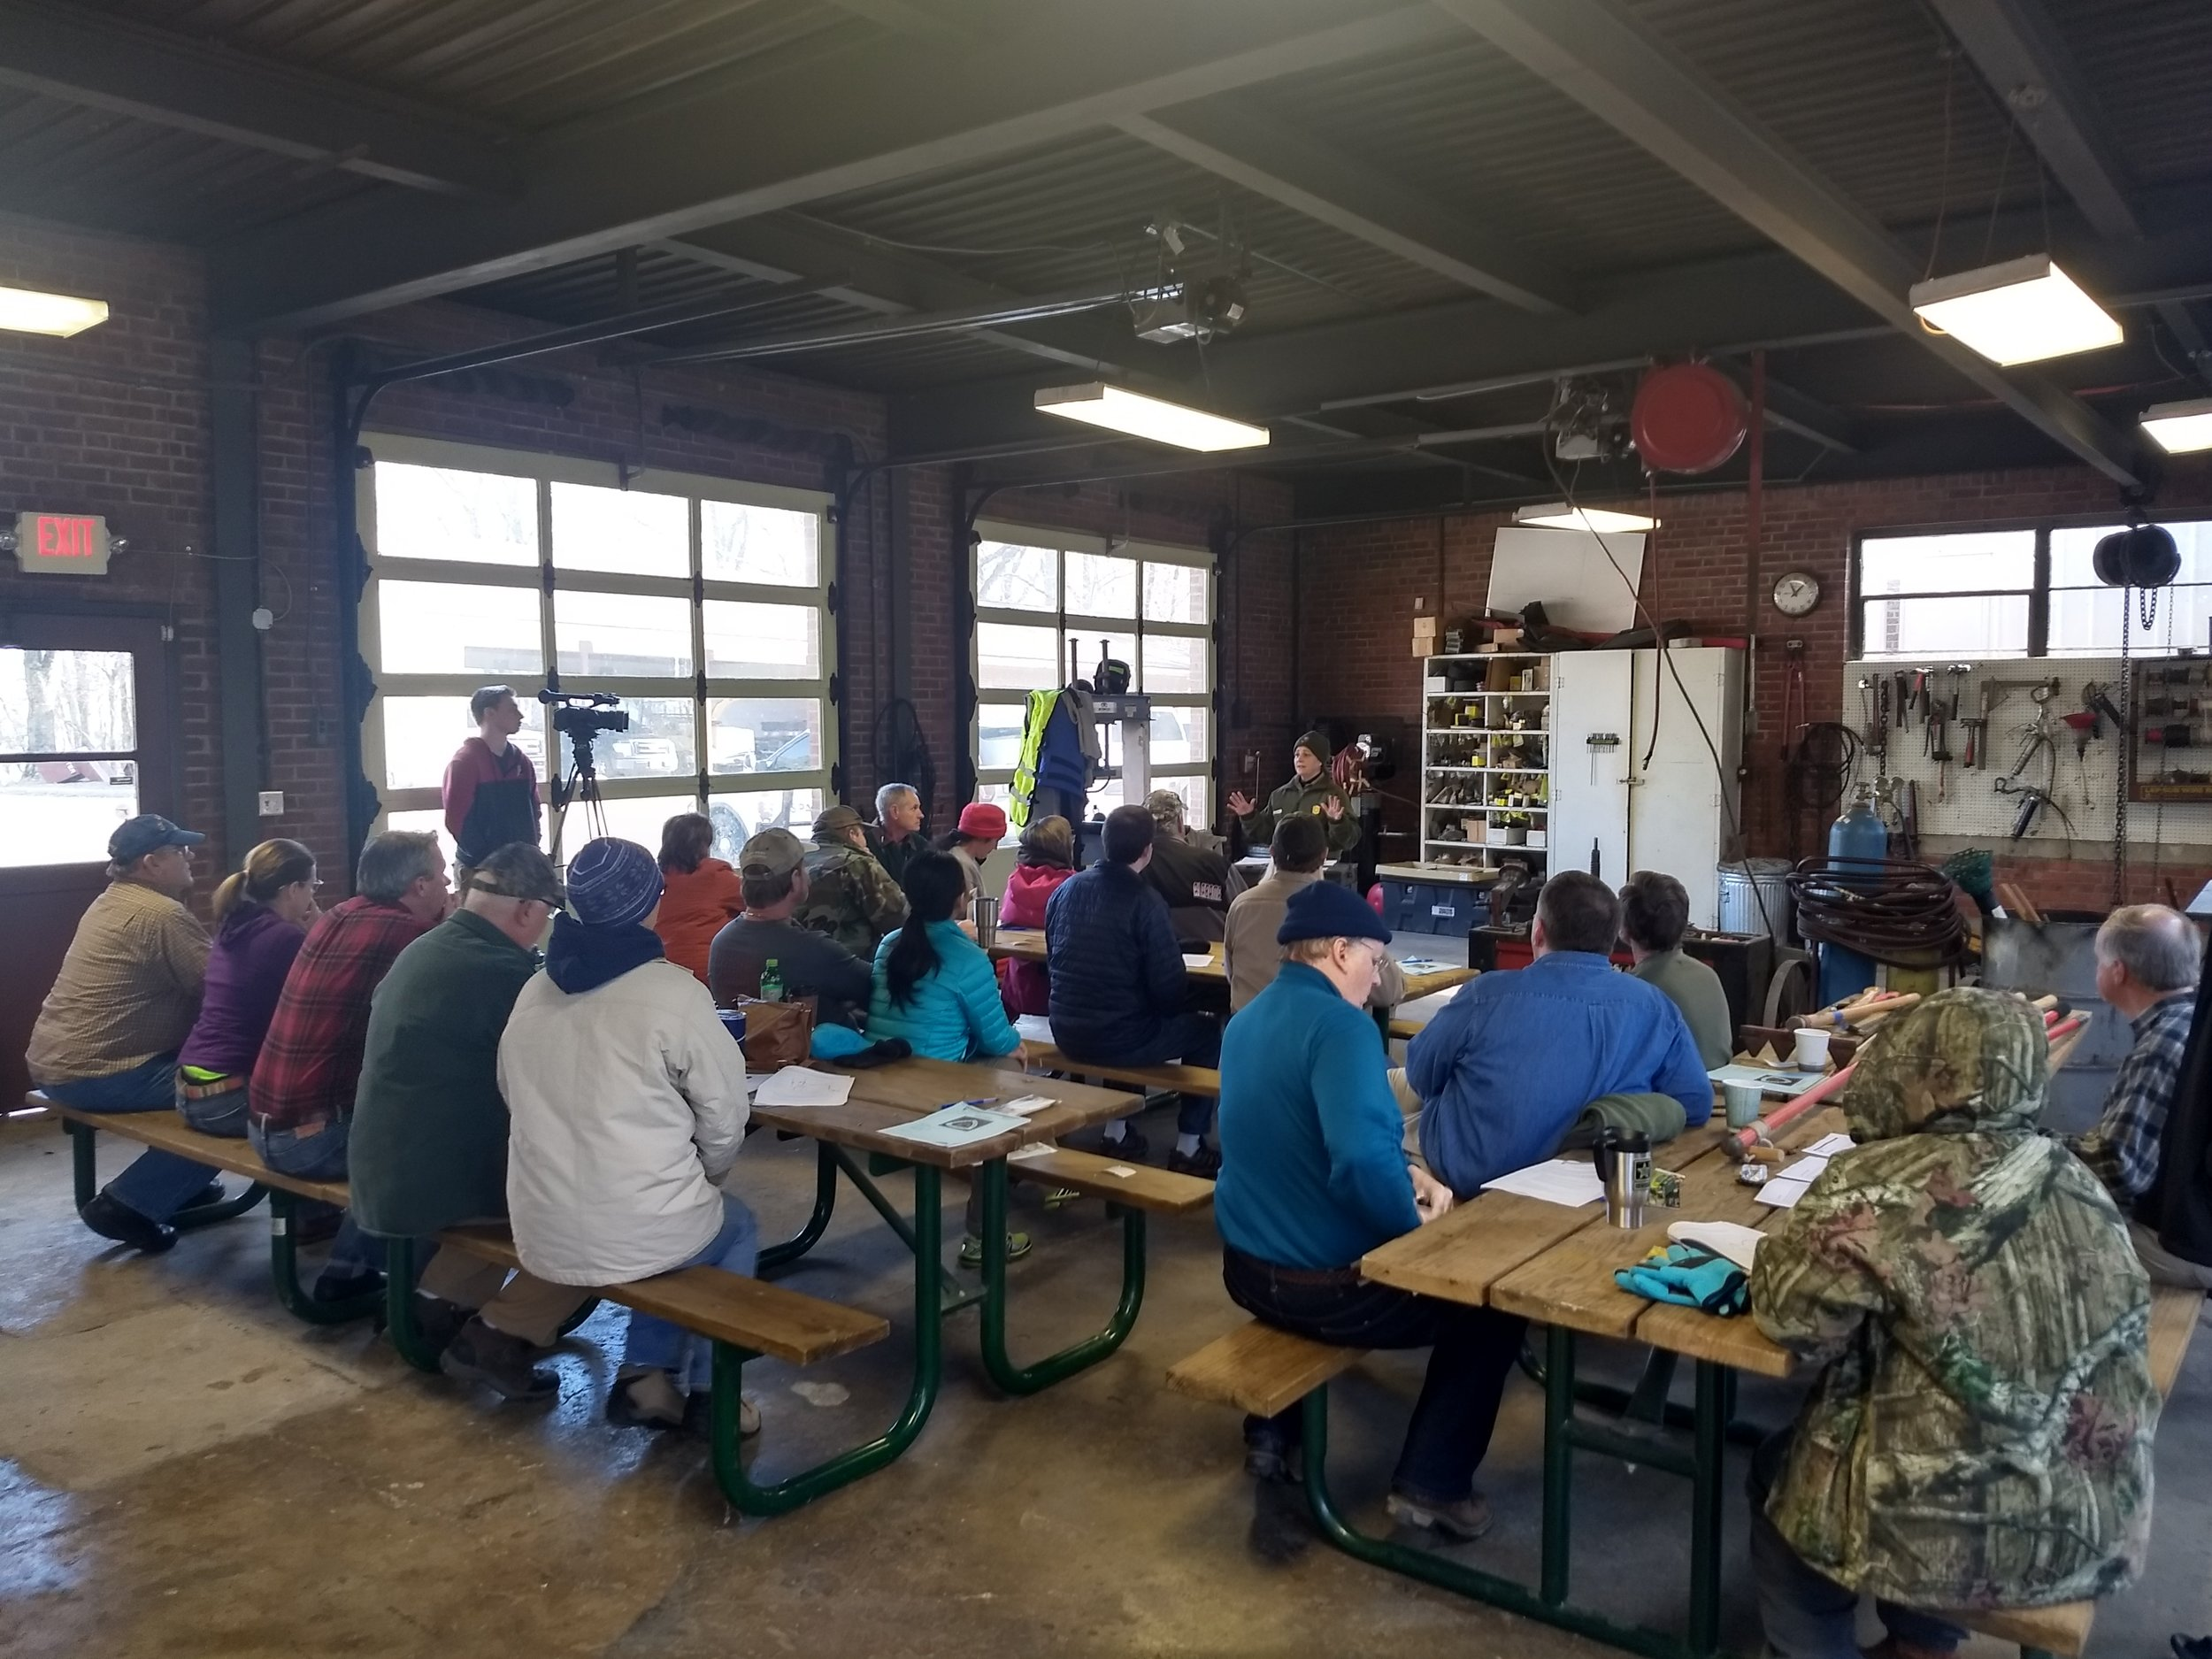 NPS employee teaching volunteers during the classroom portion of the volunteer training (on a cold January morning!)